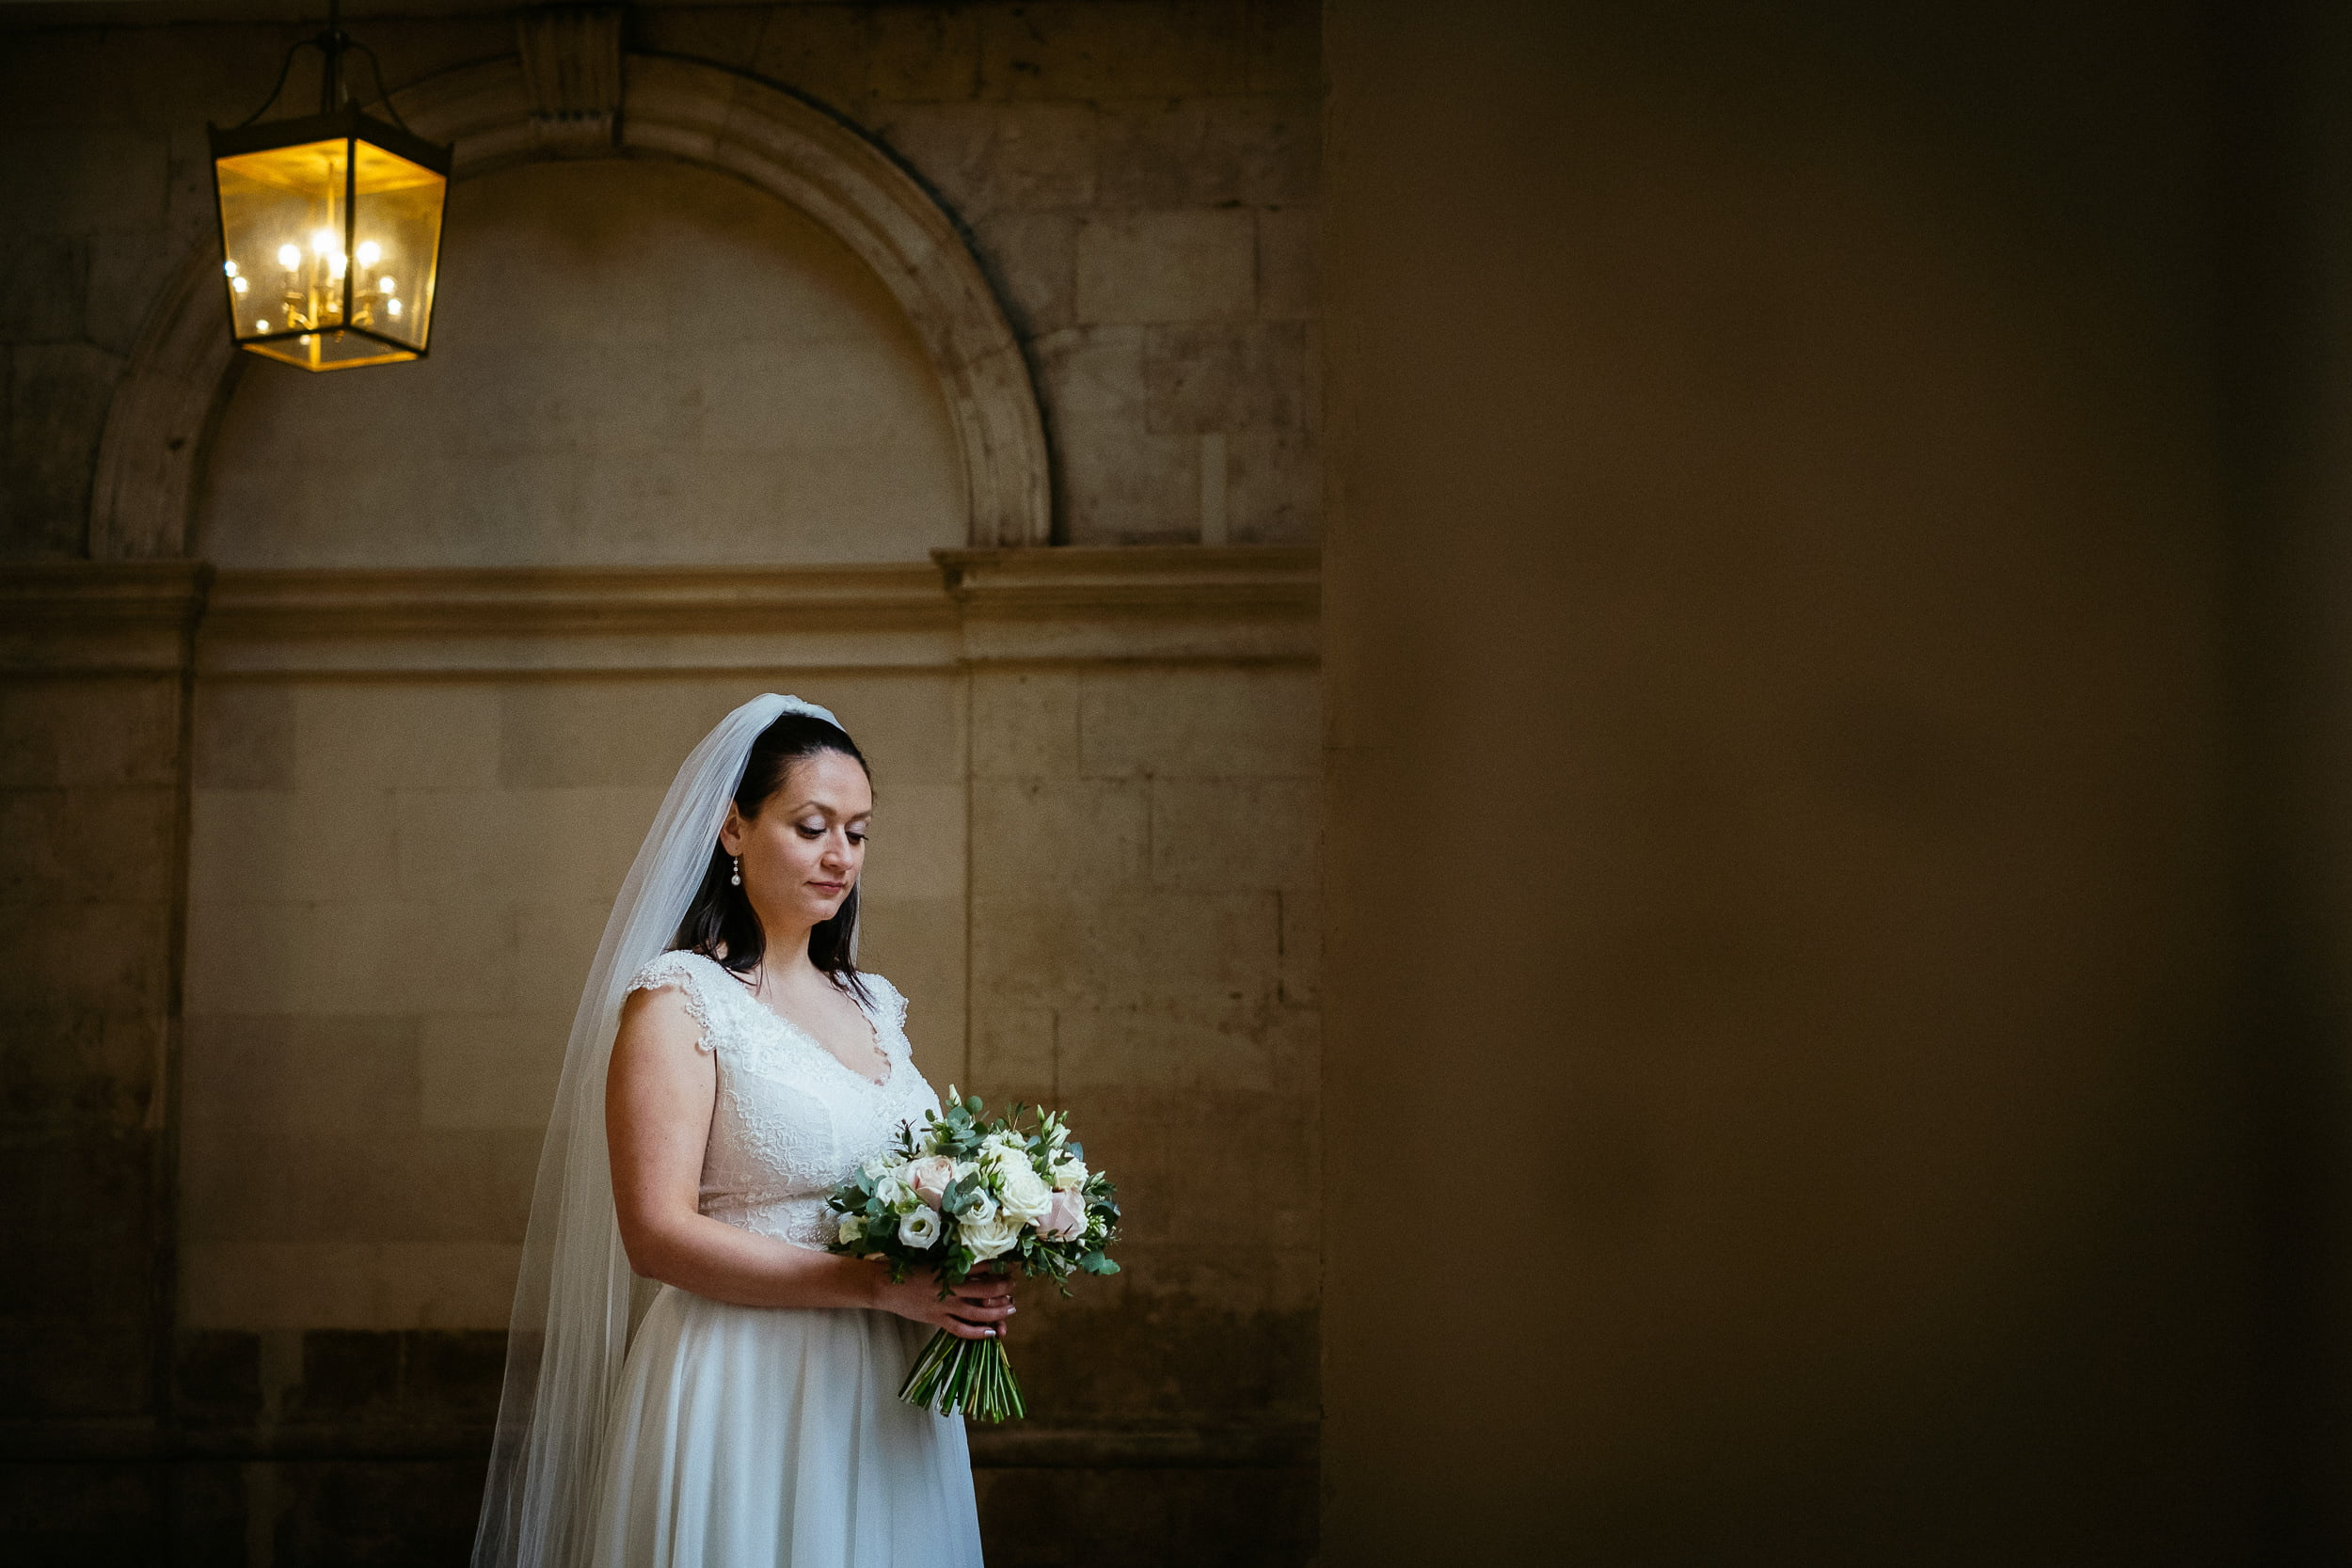 bride holding flowers at her wedding in city hall dublin